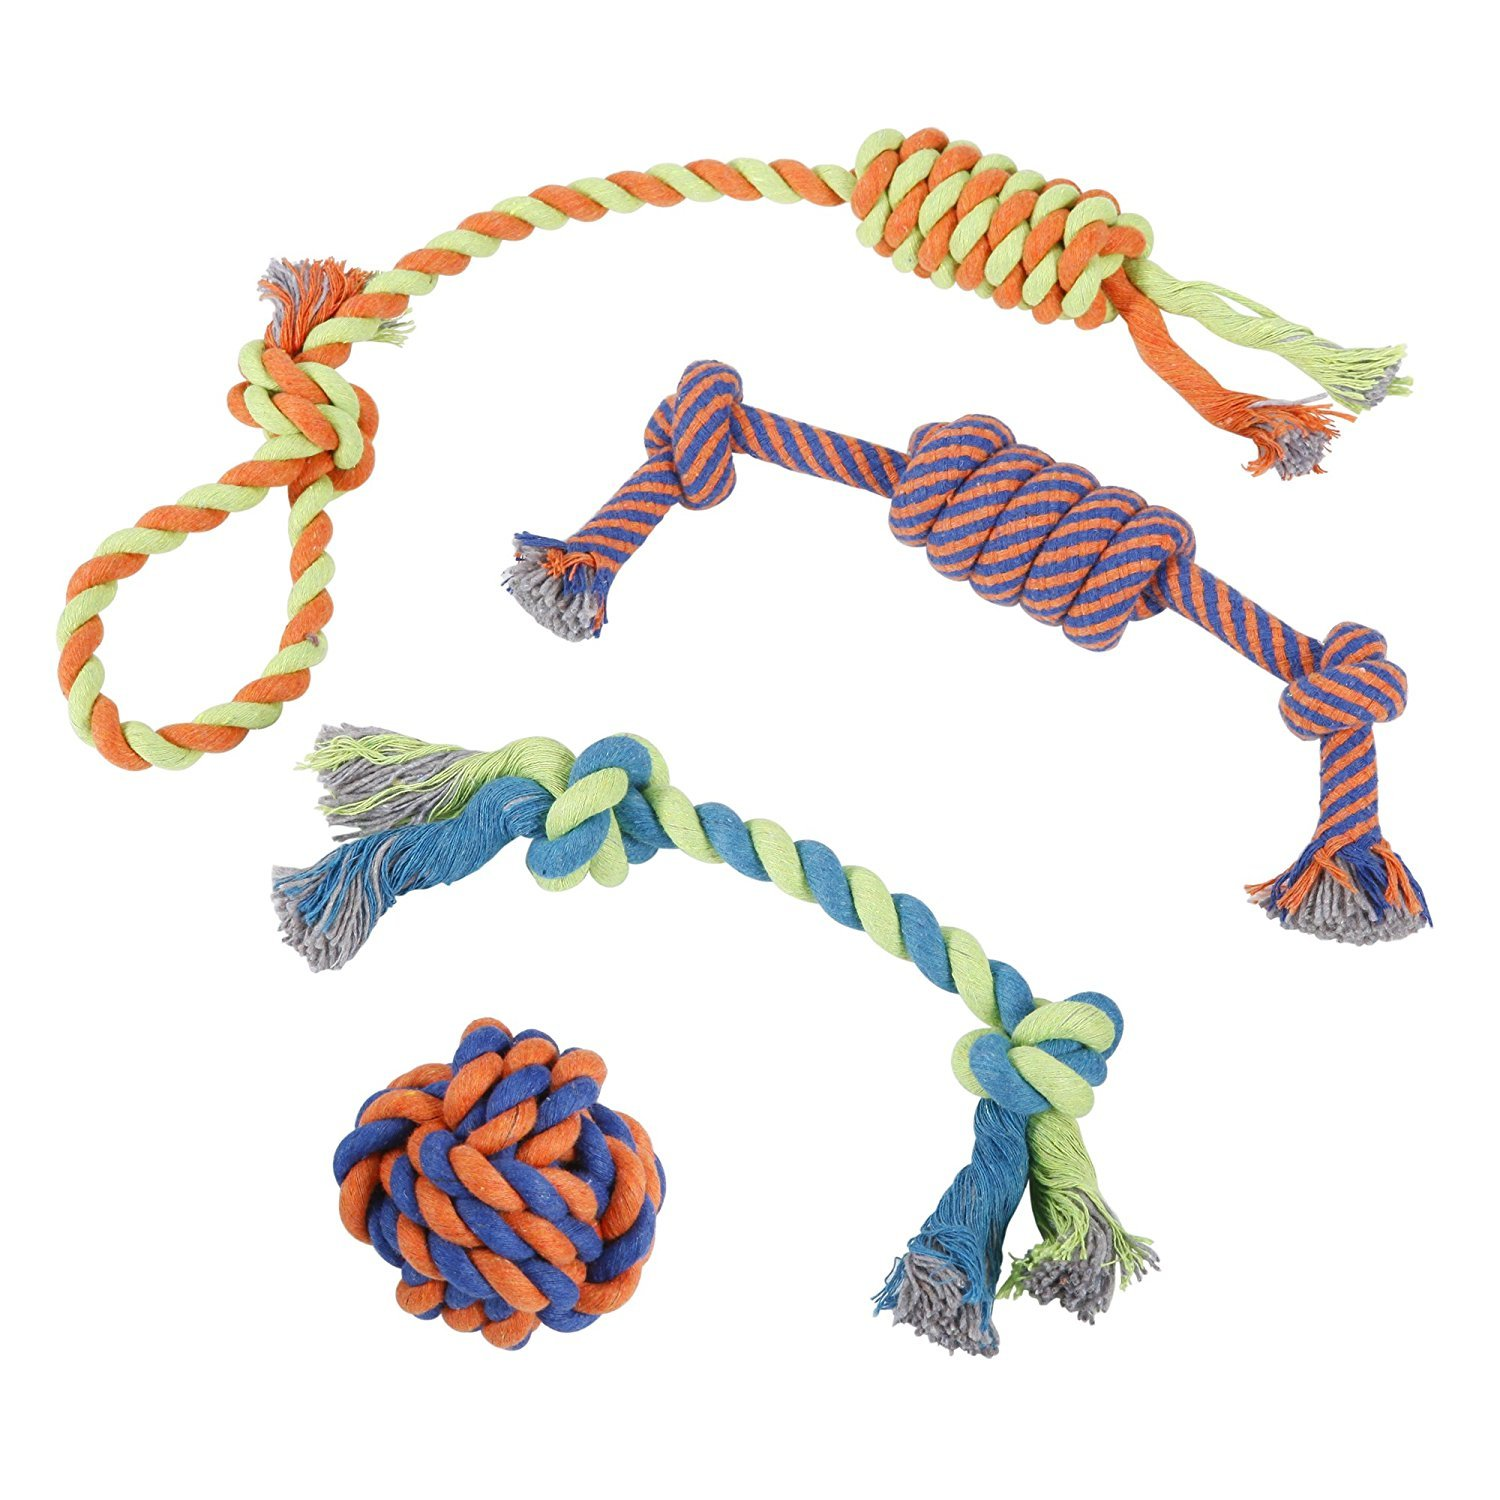 Puppy Chew Toys Dog Rope - Set of 4 for Large, Small Dogs - Durable For Aggressive Chew, Teething - 100% Natural Cotton - Chewer Ball, Dental Pull Rope, Tug of War Toy, Fetching Bone - Best Pet Gift